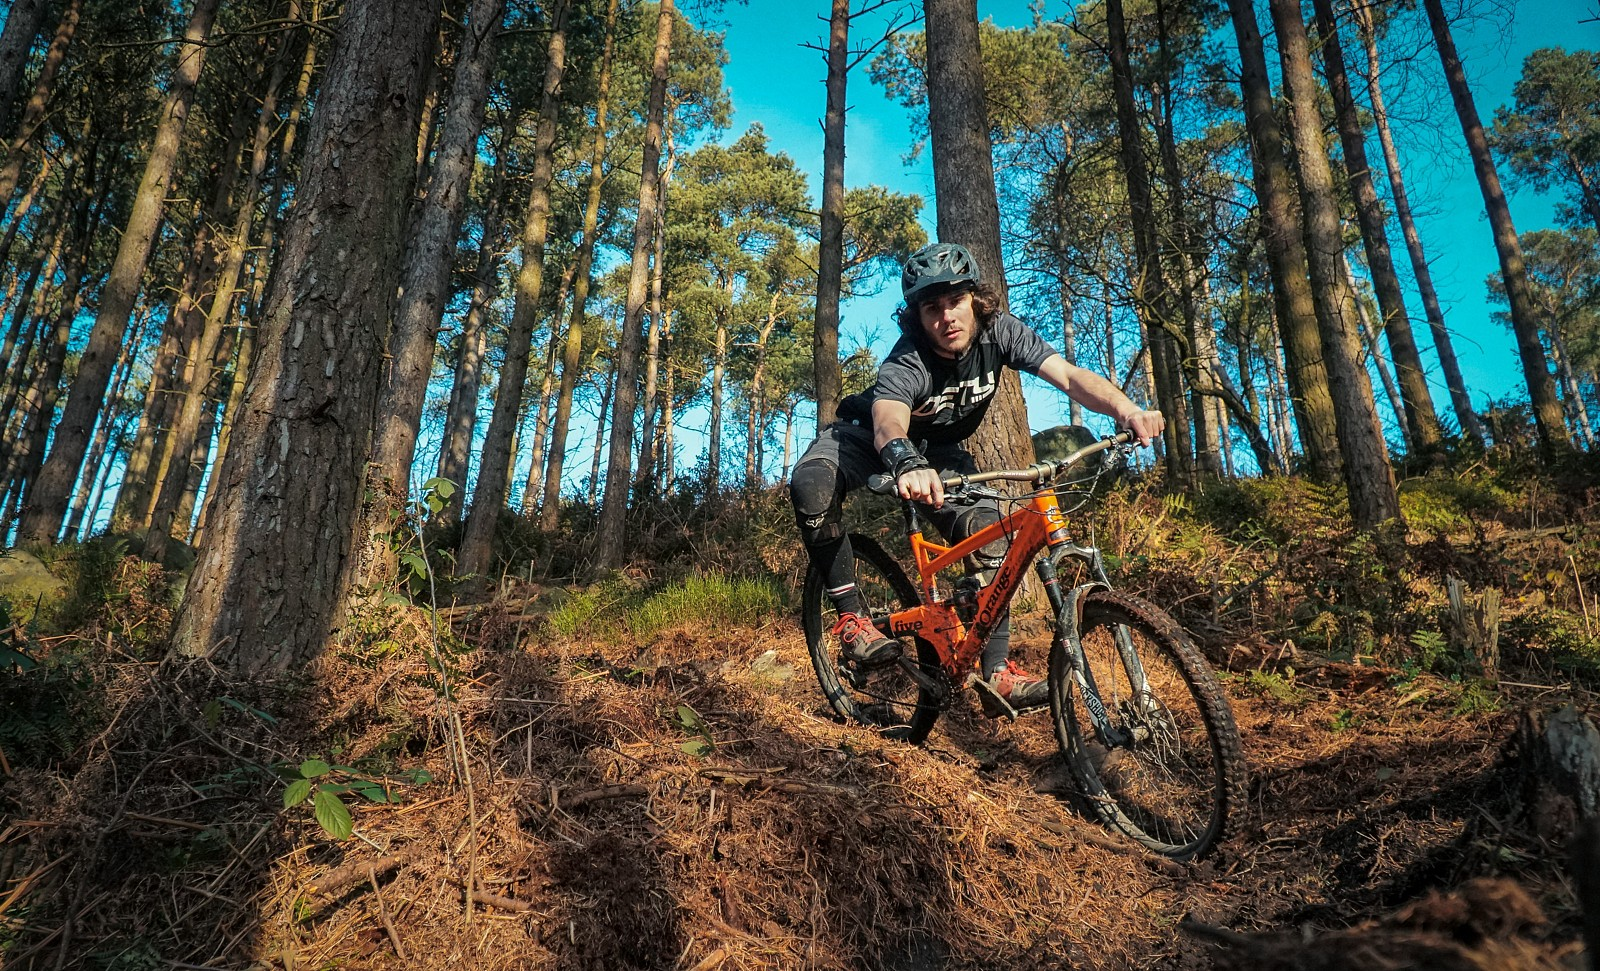 Stainburn Snaps - Mushrum - Mountain Biking Pictures - Vital MTB